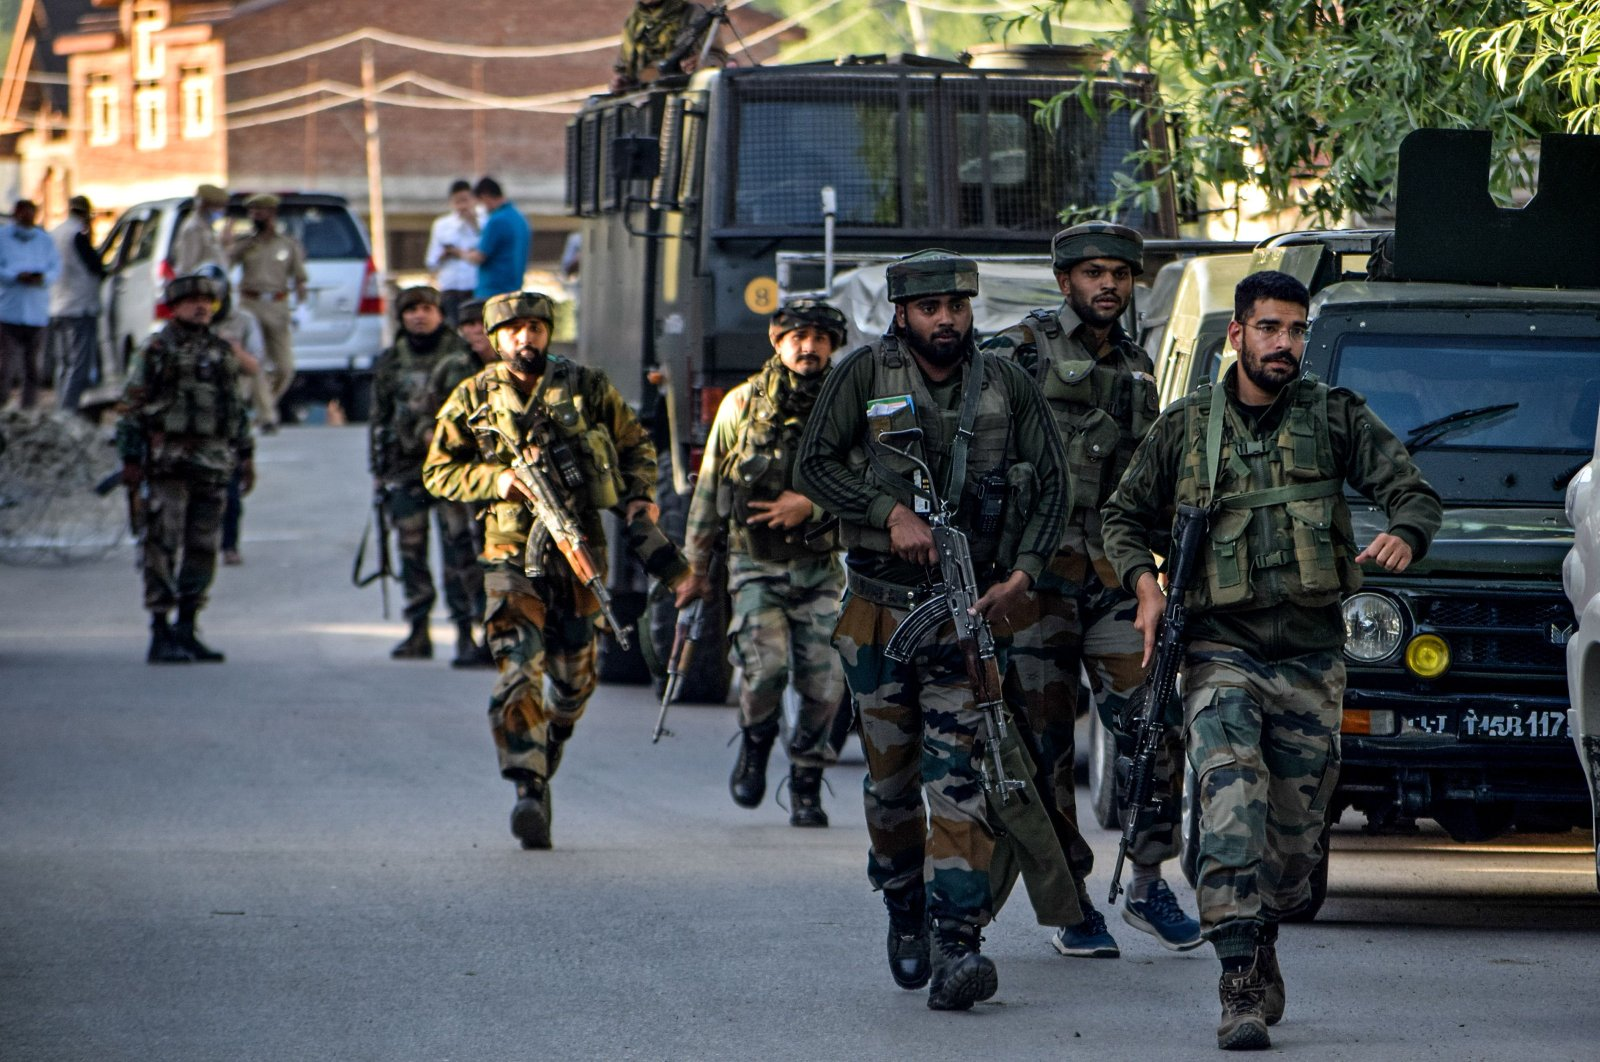 Security personnel arrive near the scene of a recent militant attack at Pandach Chowk area of central Kashmir's Ganderbal district on the outskirts of Srinagar on May 20, 2020. (AFP Photo)